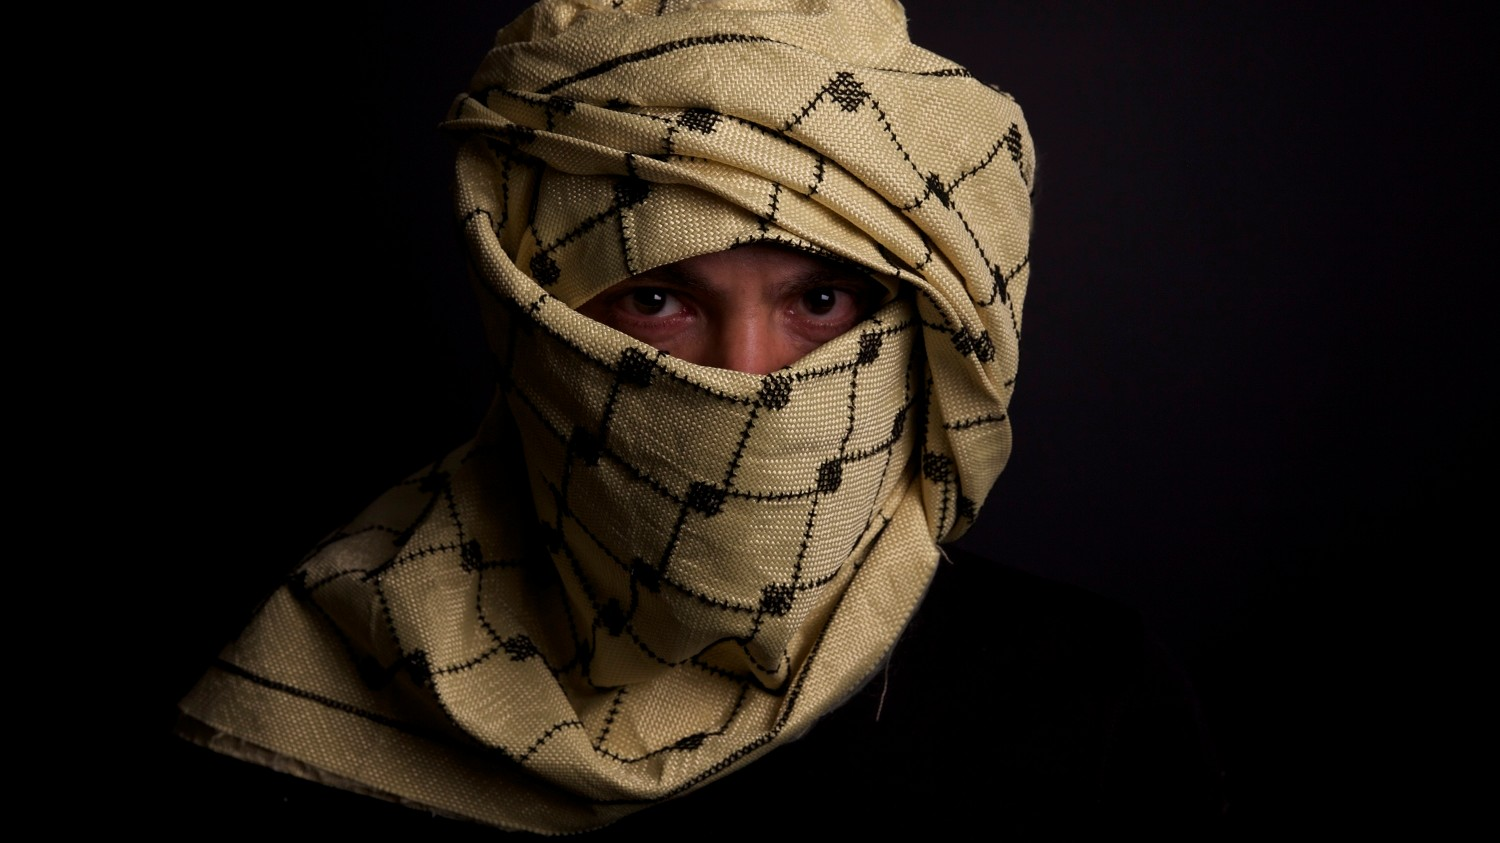 Dodging Stray Bullets in Lebanon With The World's First Bulletproof Headscarf